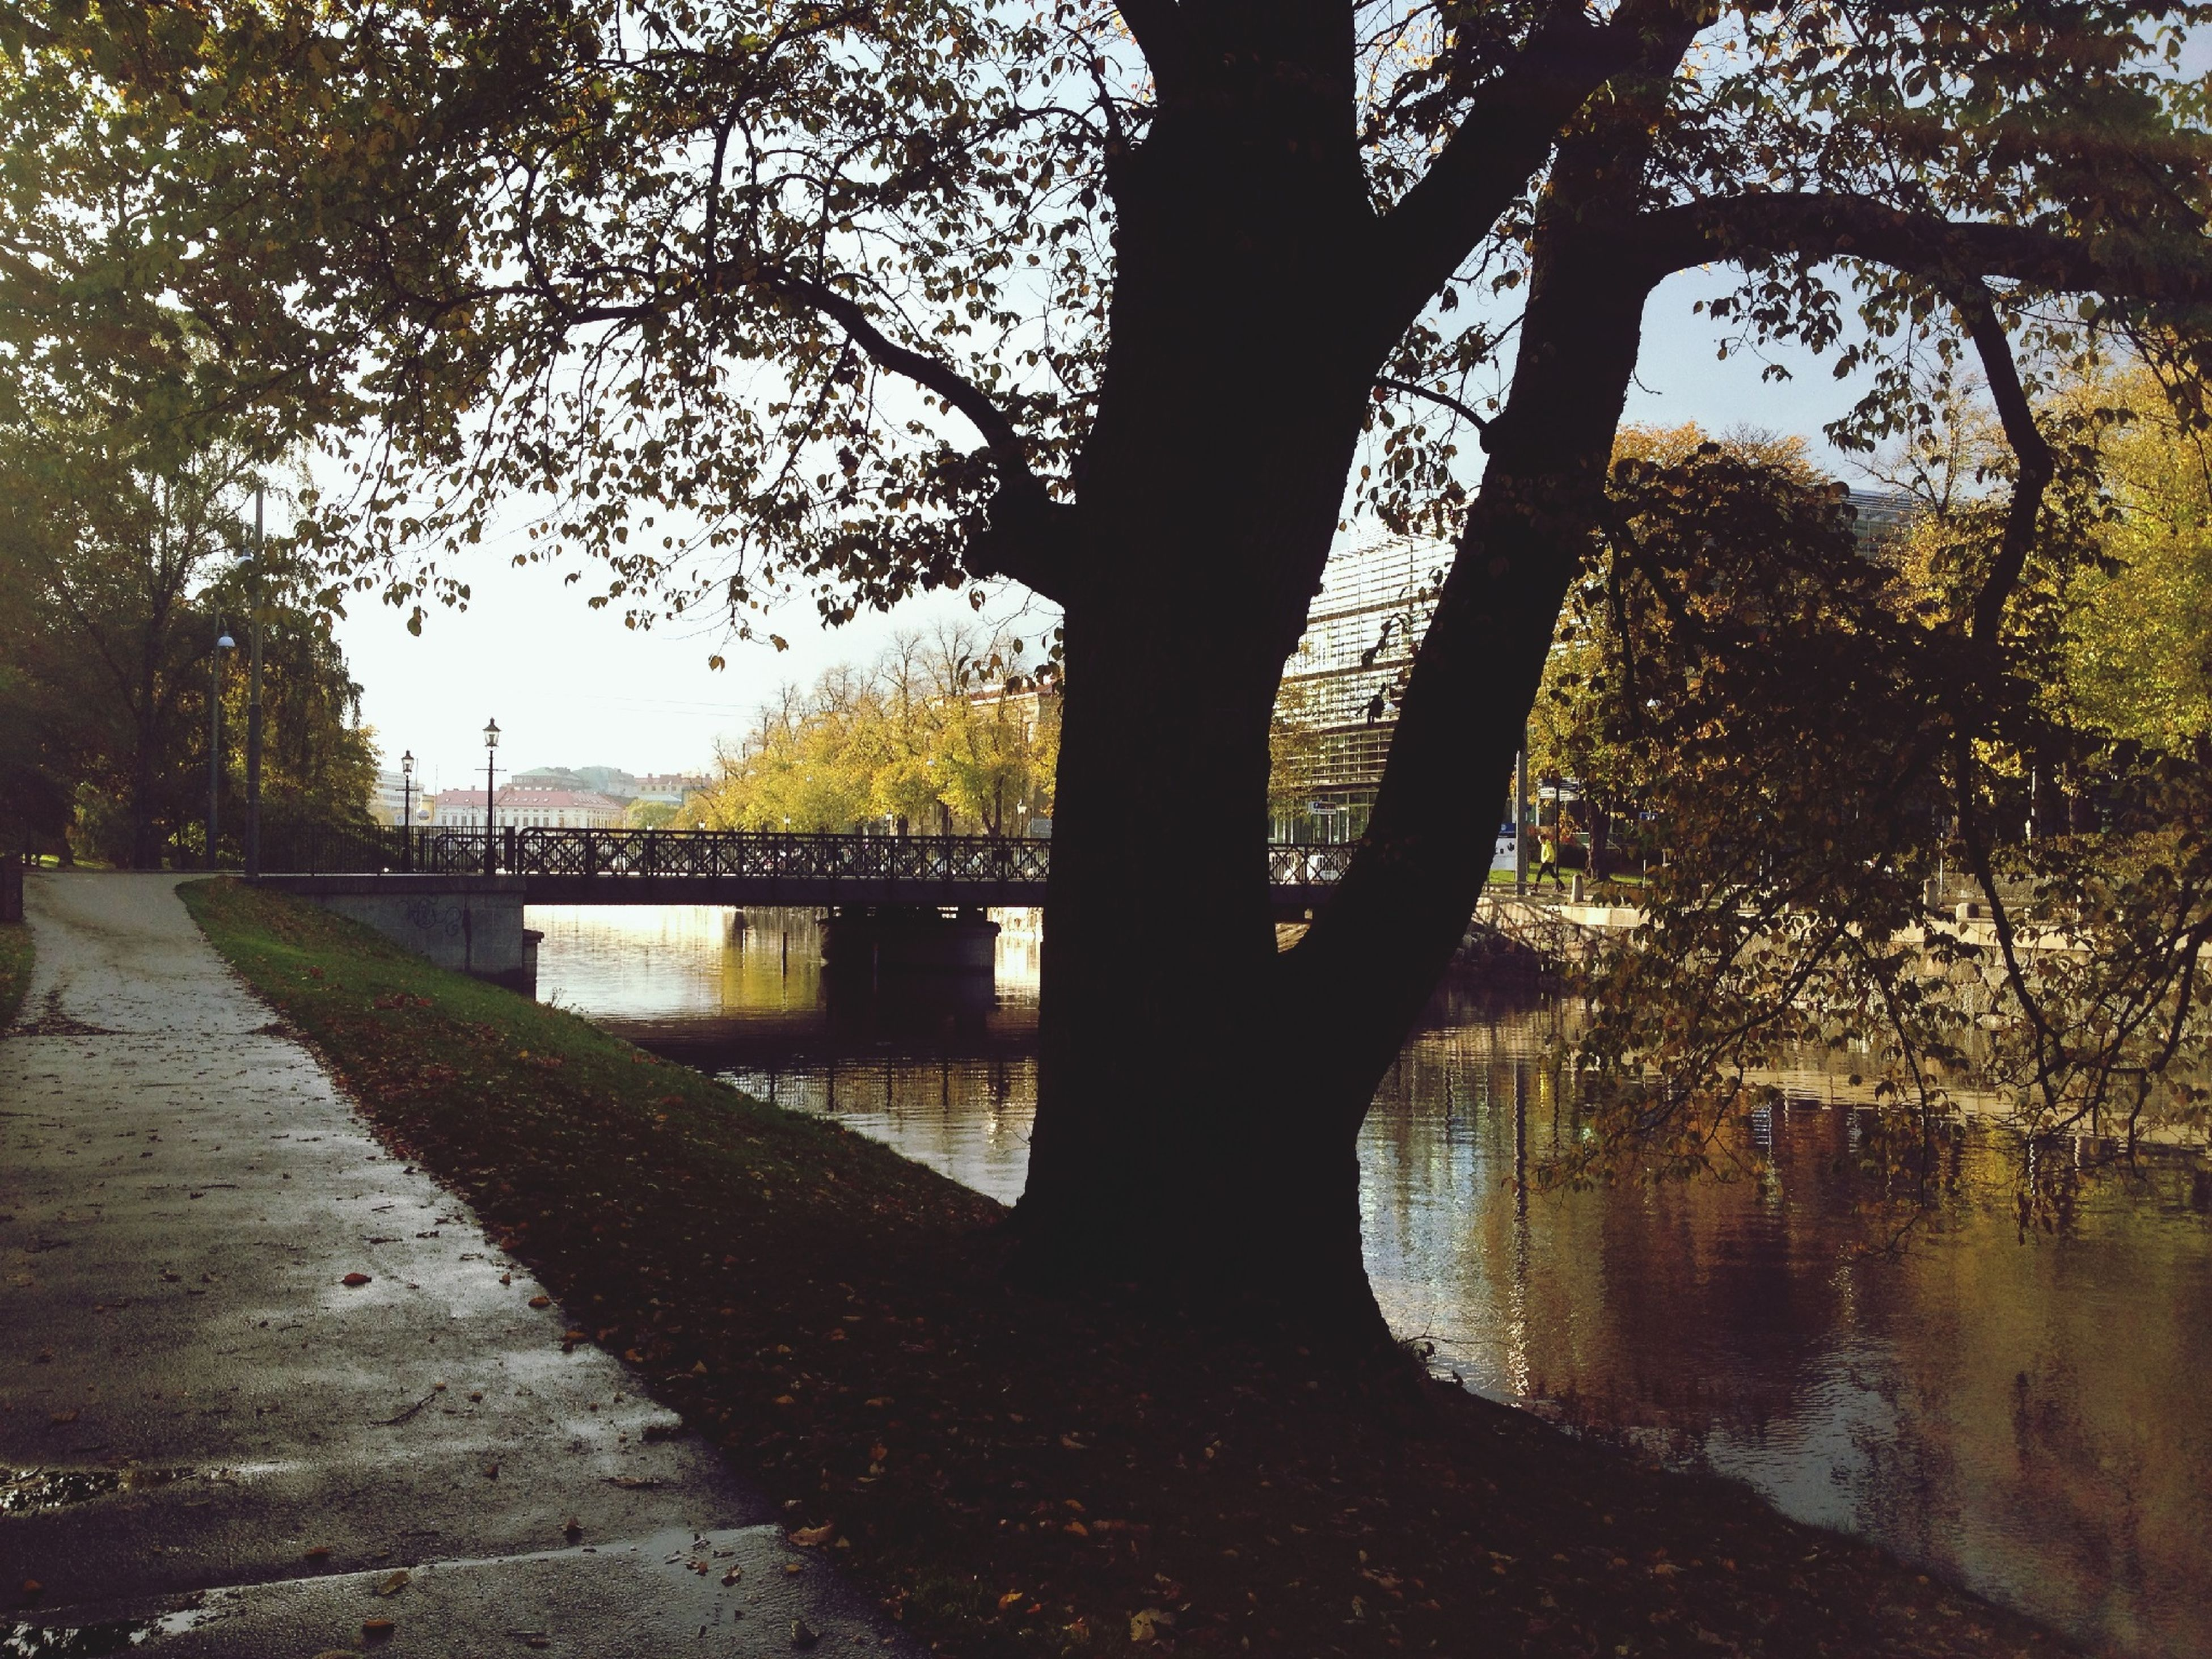 tree, water, reflection, tranquility, river, branch, lake, tree trunk, tranquil scene, nature, scenics, beauty in nature, sky, growth, outdoors, day, bare tree, silhouette, bridge - man made structure, park - man made space